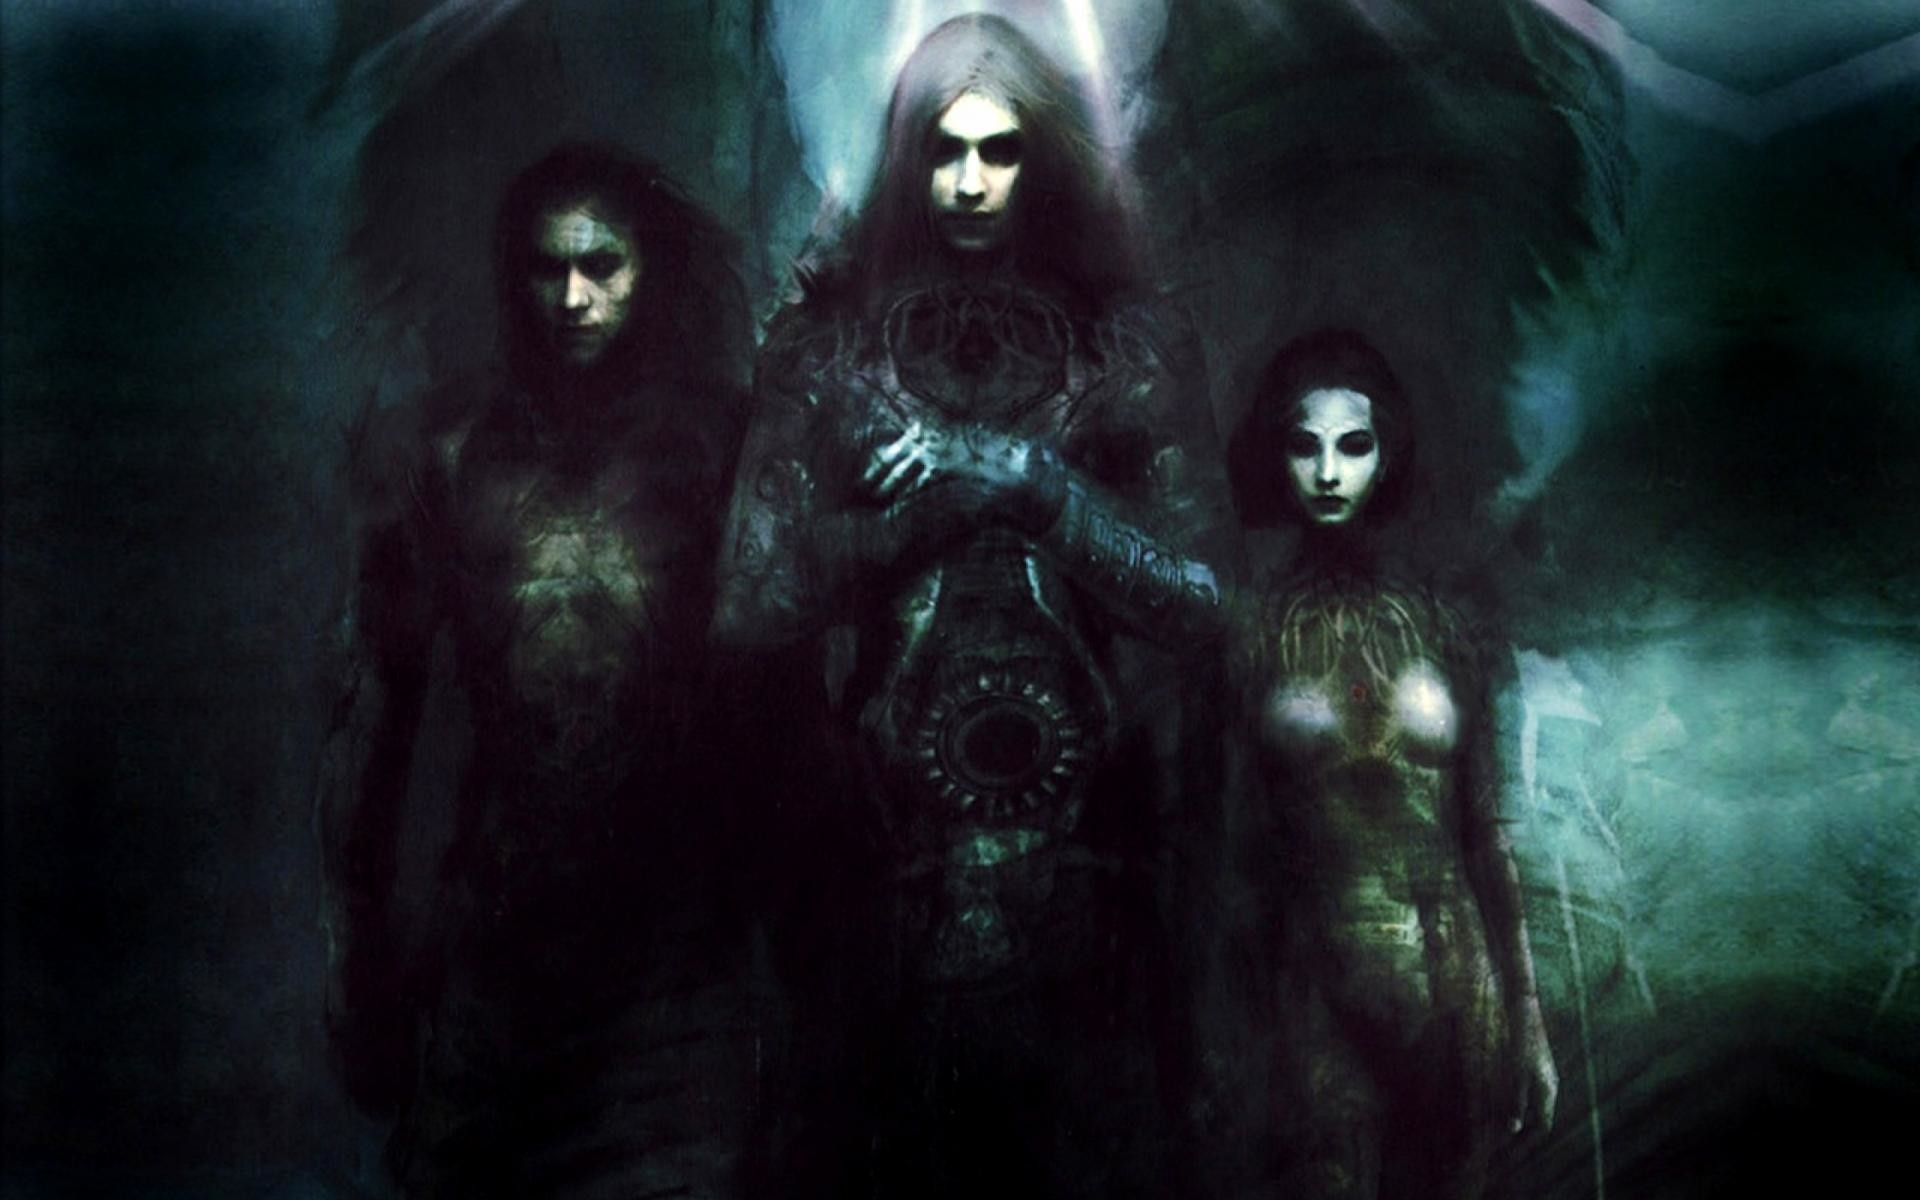 Res: 1920x1200, ... babes women, gothic, windows desktop images,dark, halloween,  widescreen, spooky, art, men,fun, fantasy, artwork, vampires, angels, evil  Wallpaper HD